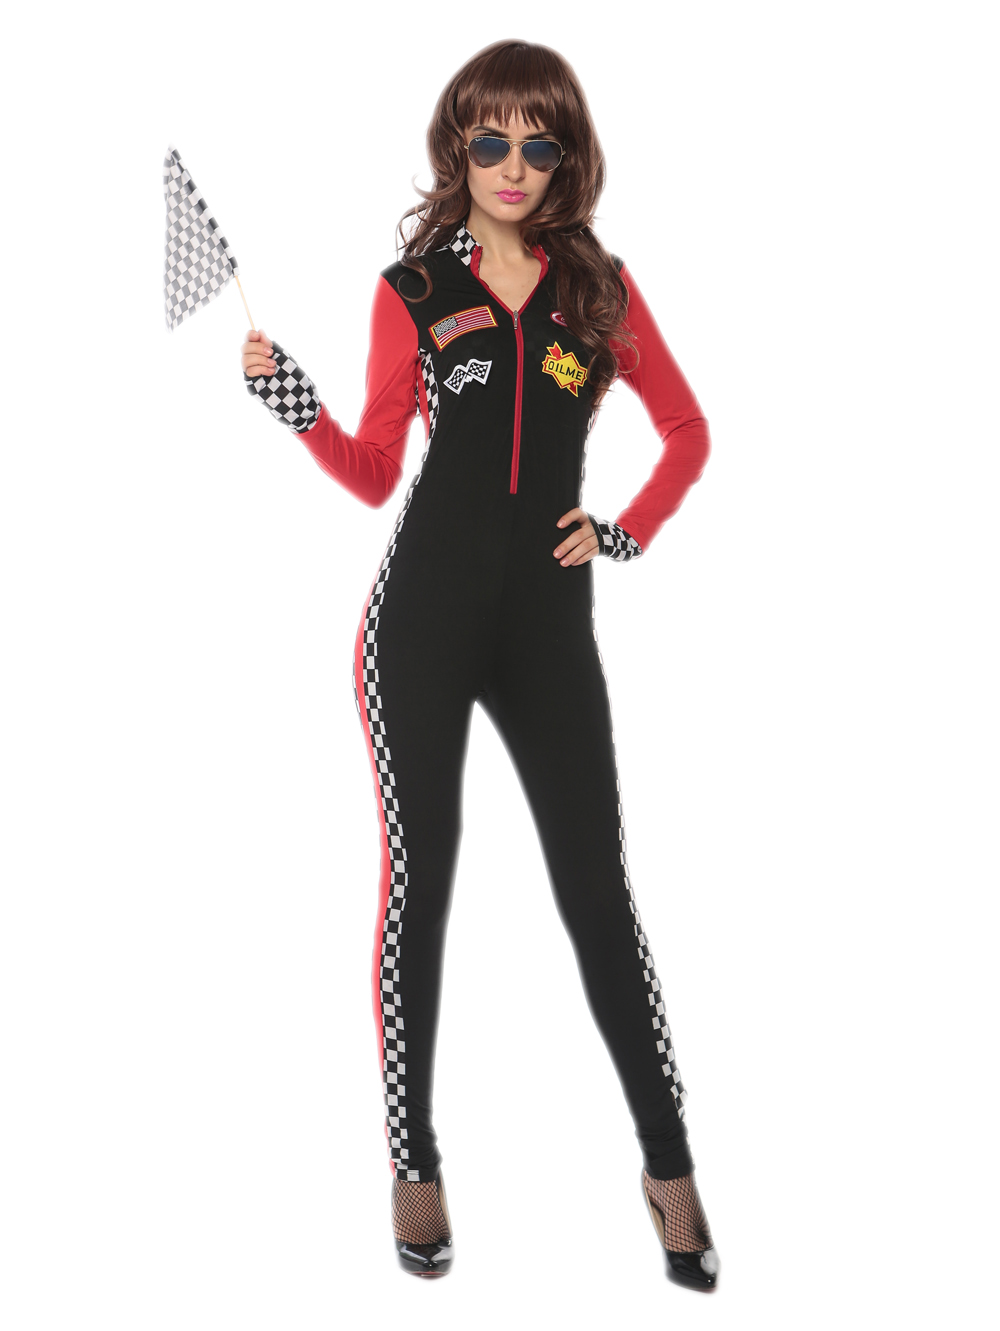 newest seductive sexy race girl jumpsuit 3S1722 Free shipping best quality adult halloween costumes